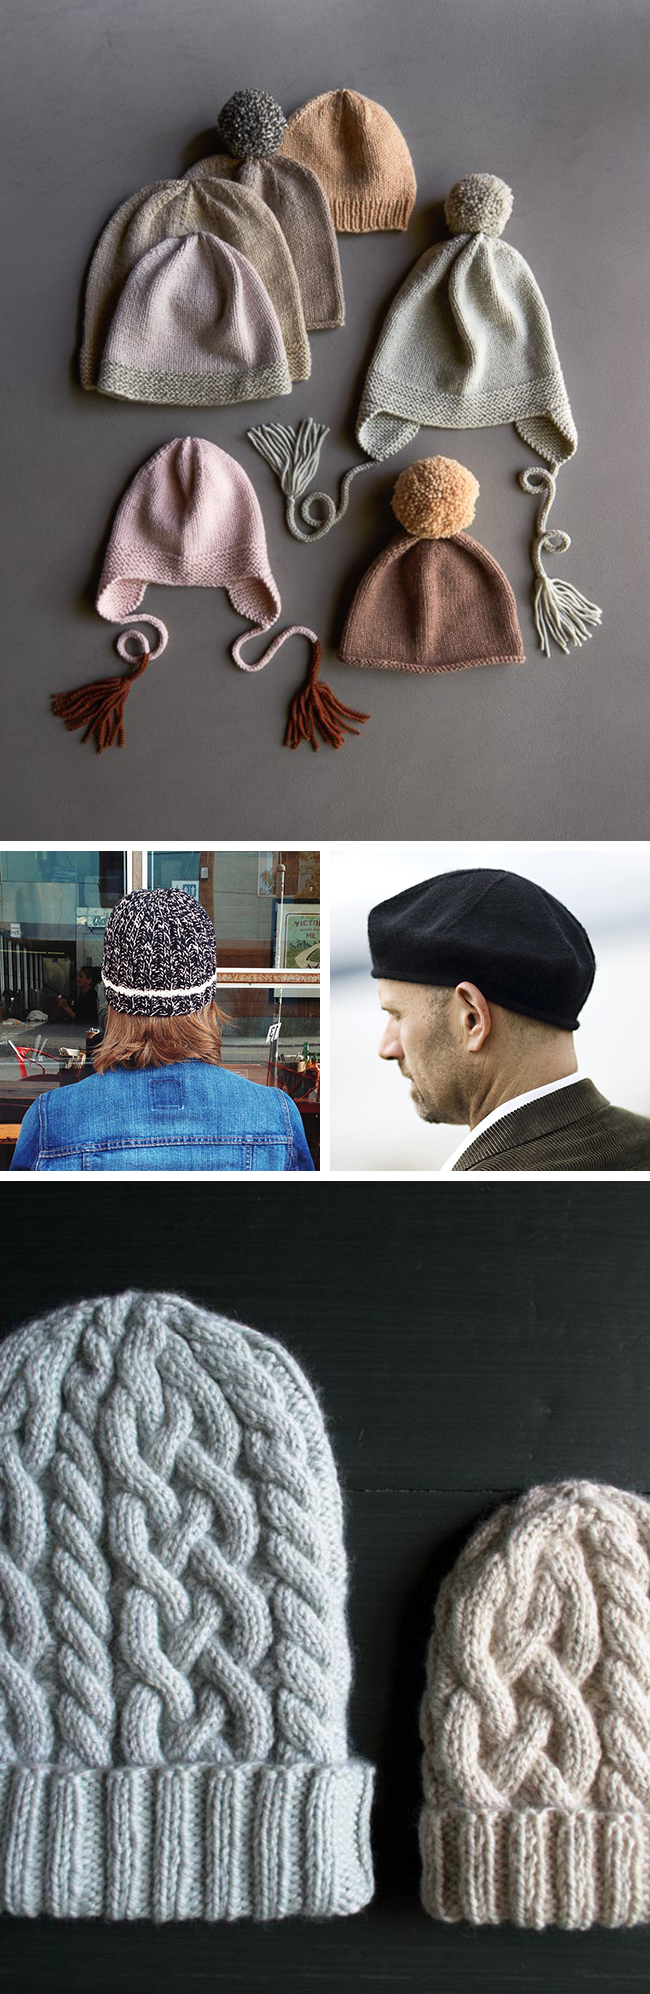 Make Your Own Basics: The hat